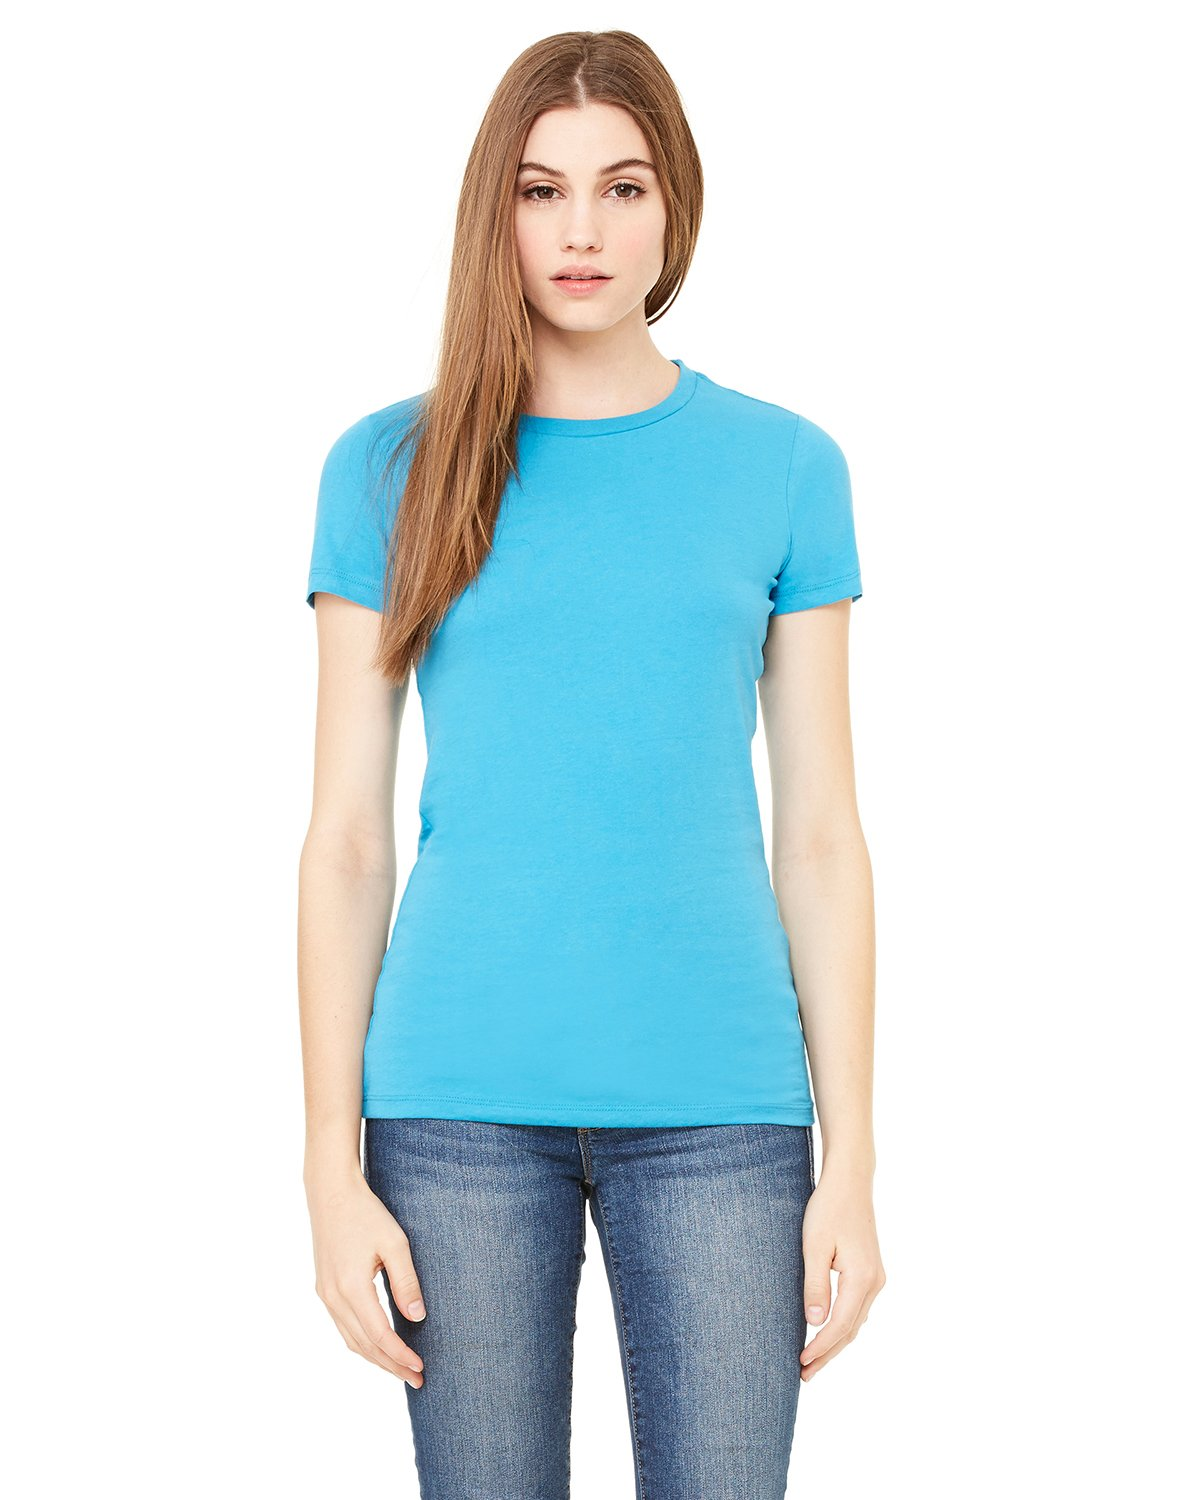 Bella + Canvas - 6004 - Ladies' The Favorite T-Shirt